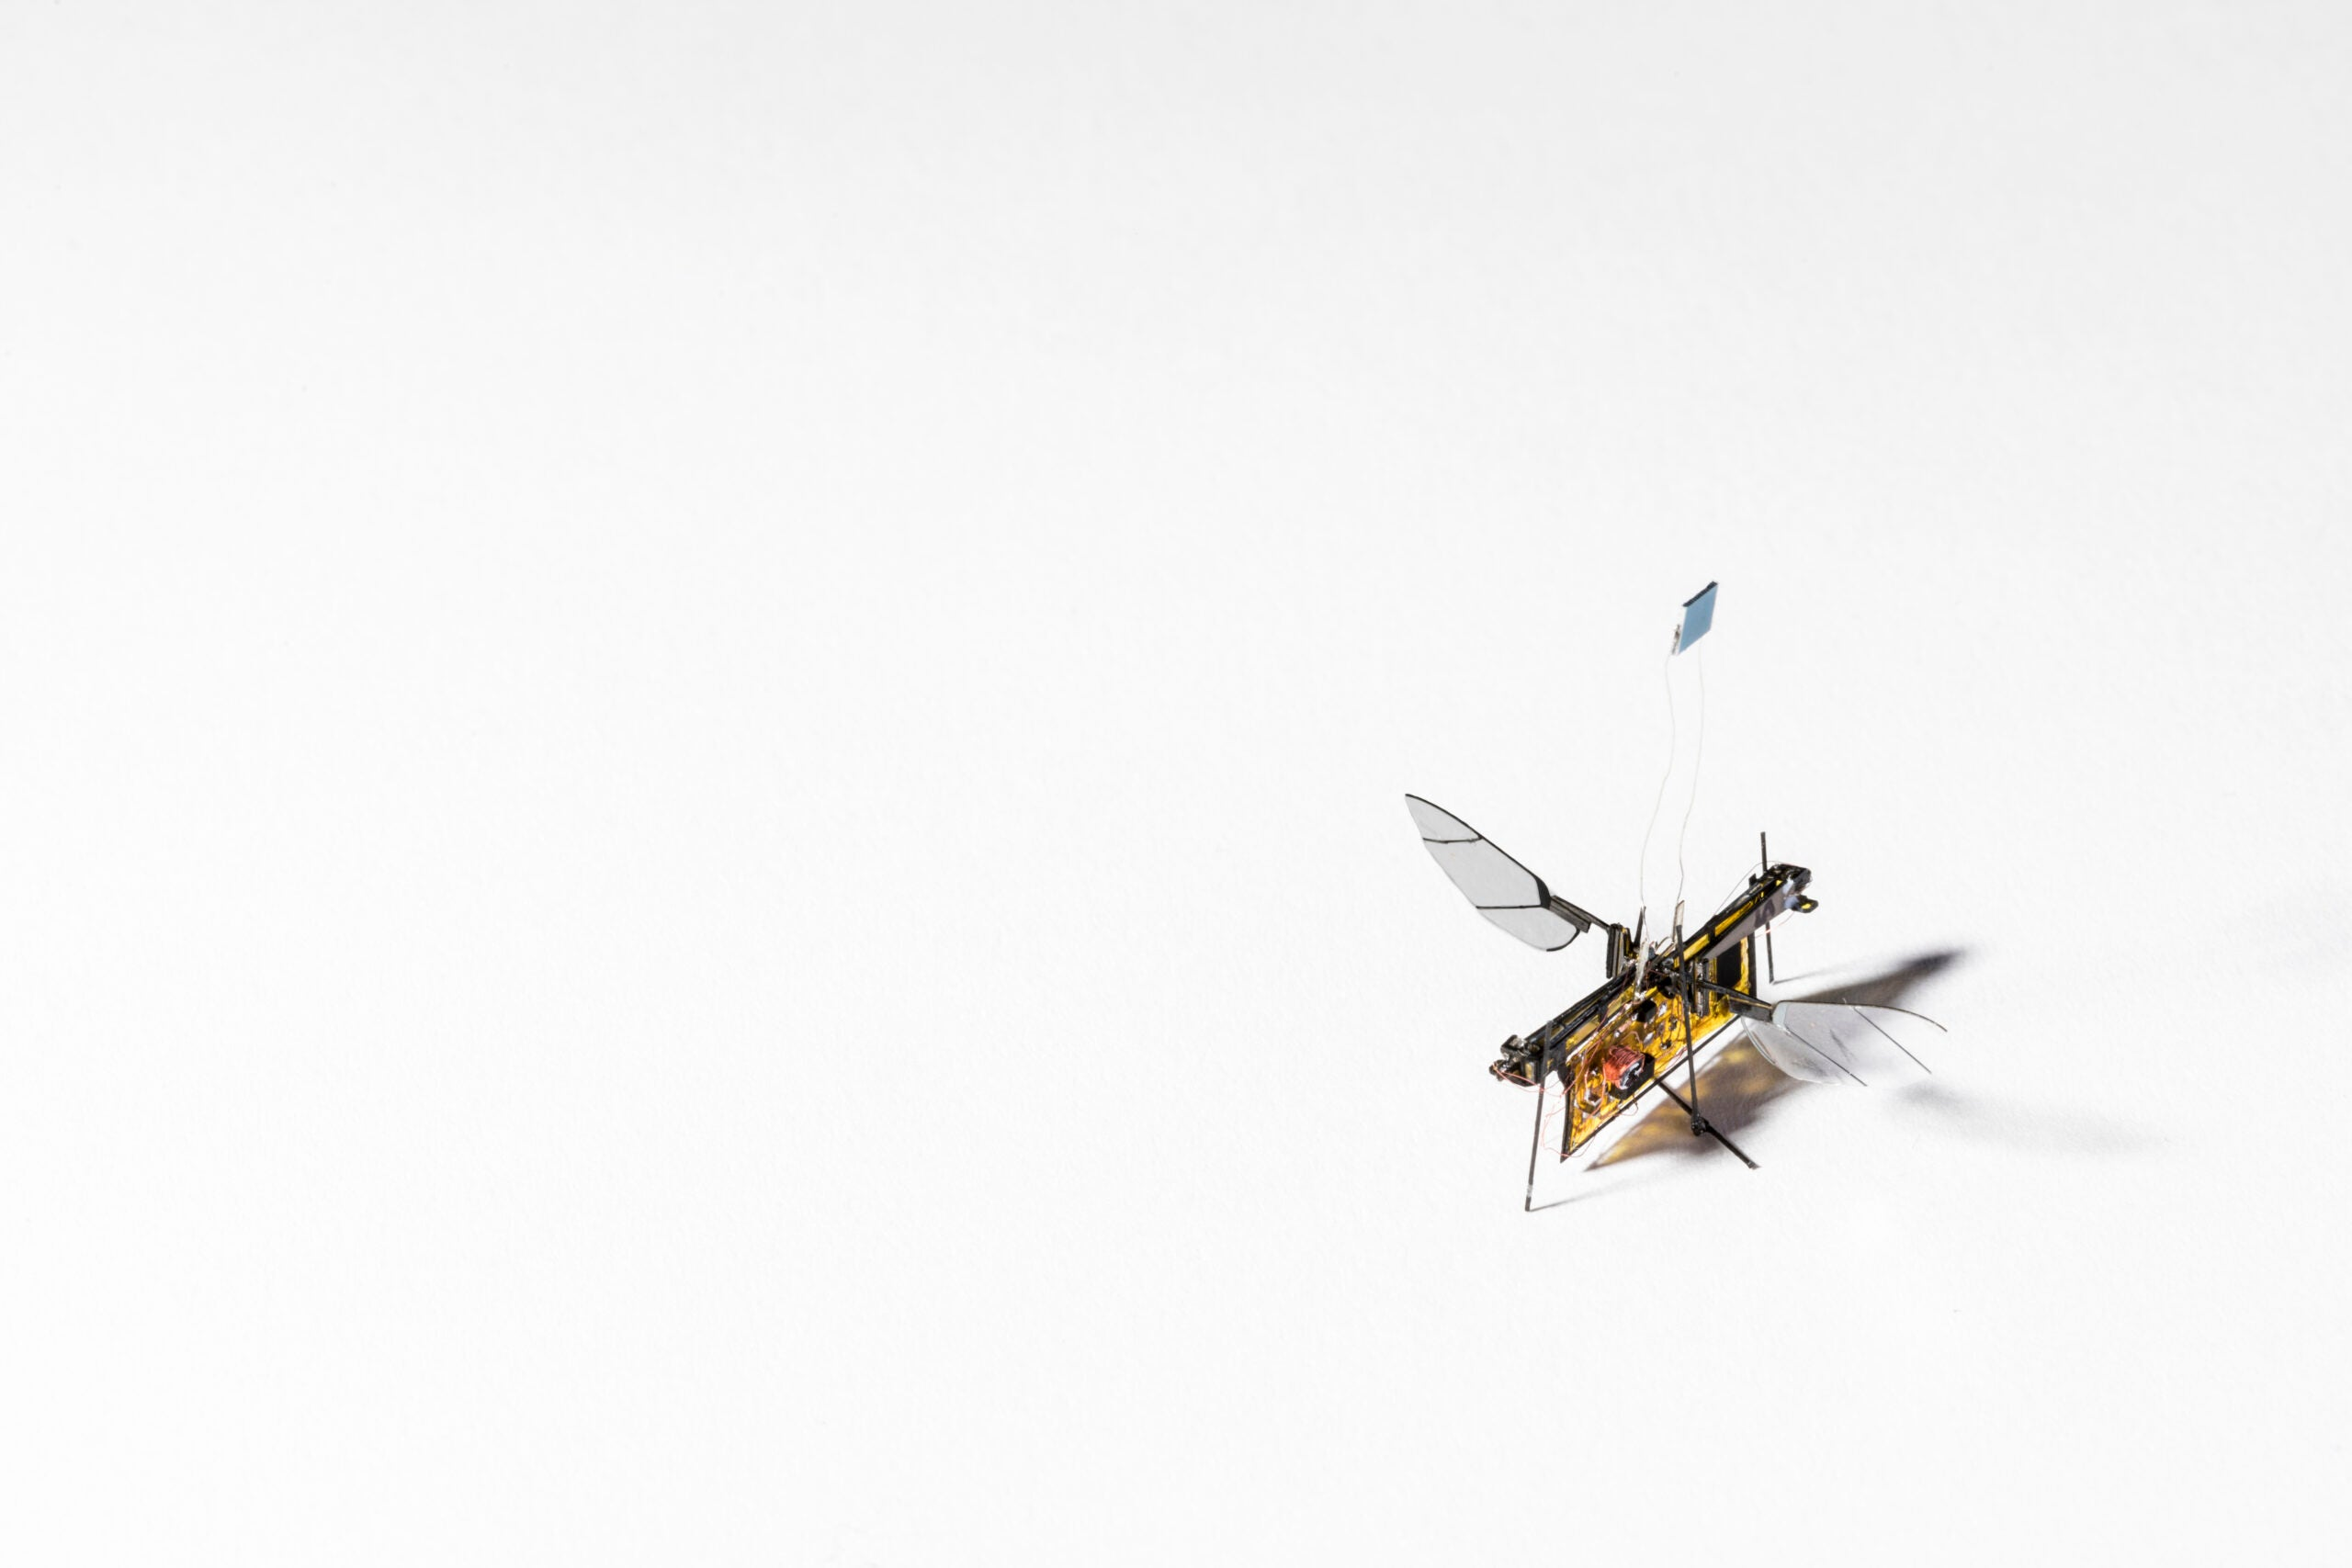 This tiny, laser-powered RoboFly could sniff out forest fires and gas leaks